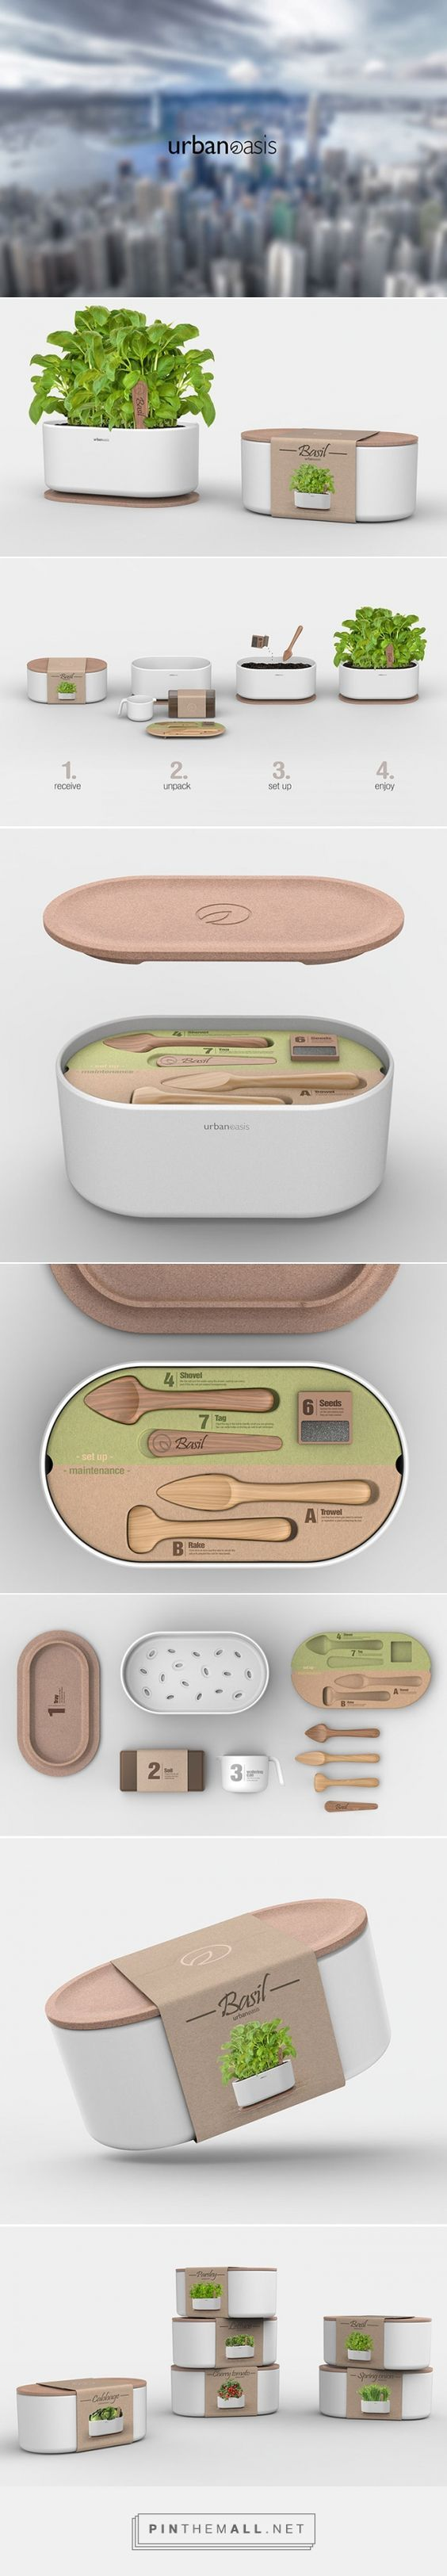 URBAN OASIS urban gardening kits by Andrea Mangone. Pin curated by #SFields99 #packaging #design